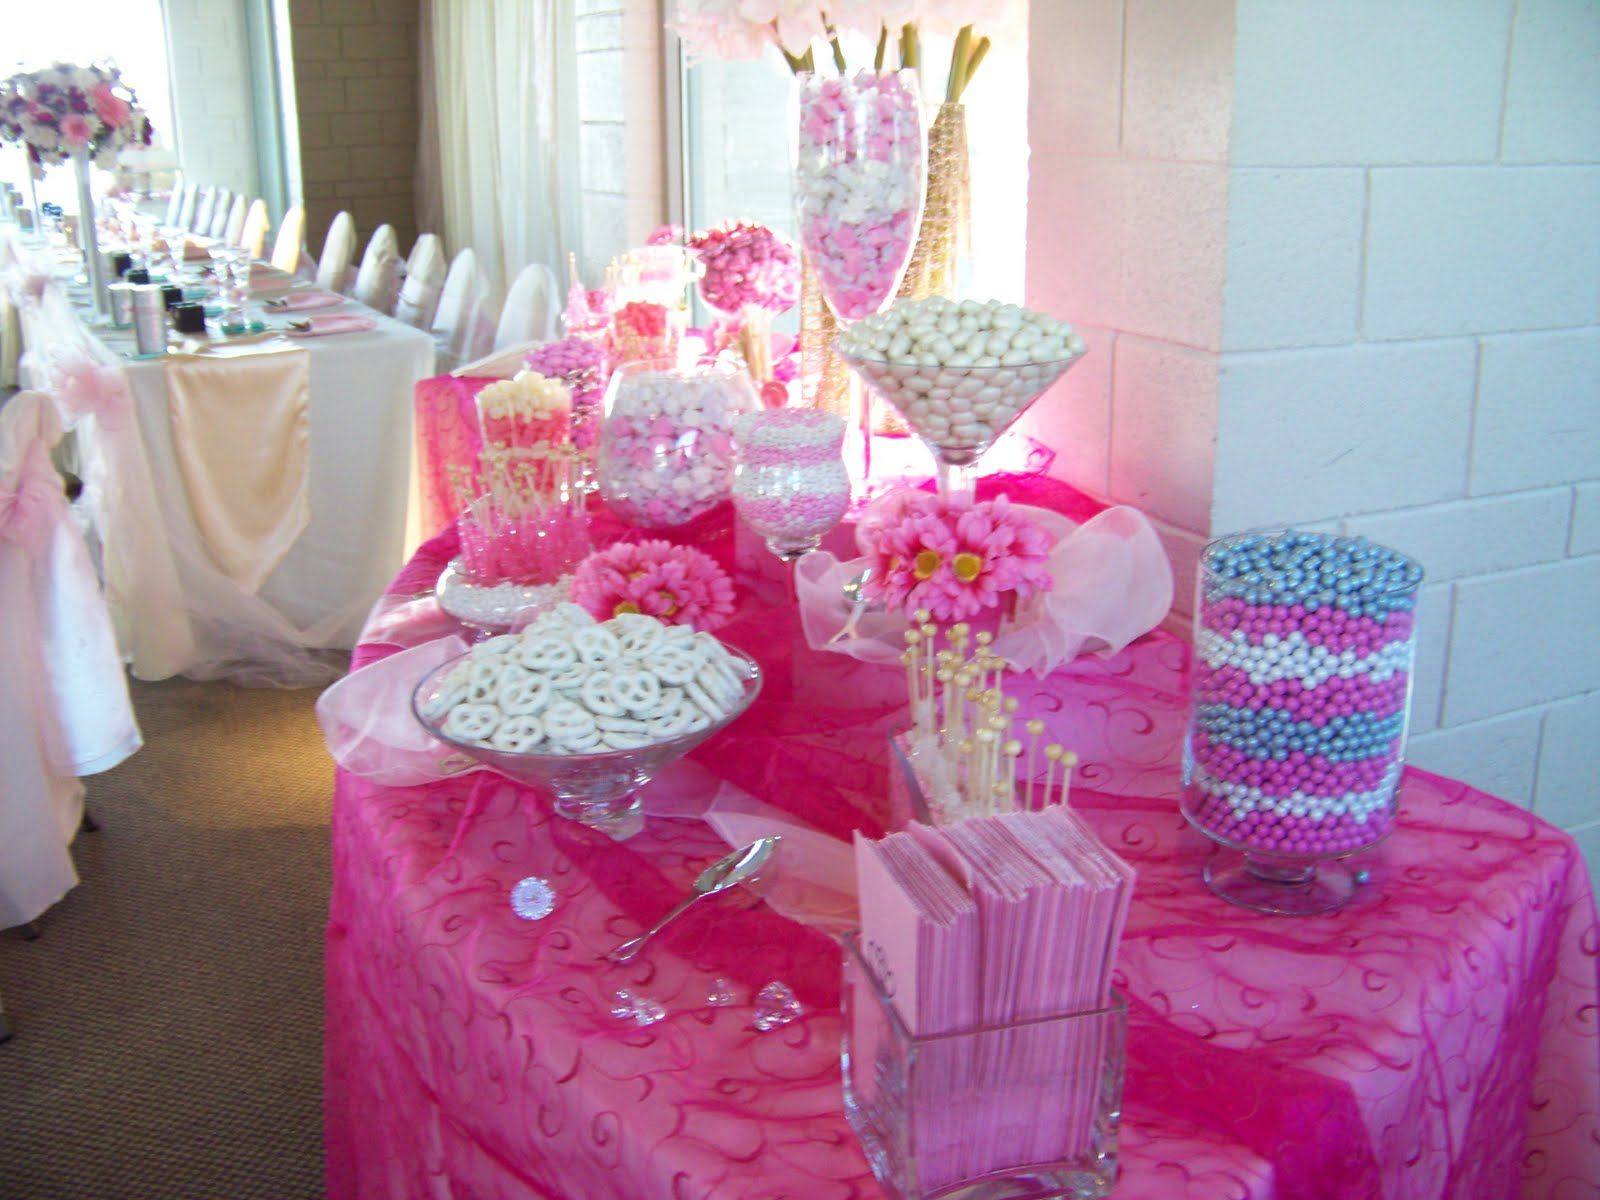 candy table ideas for weddings | blog: candy buffet ideas for ...